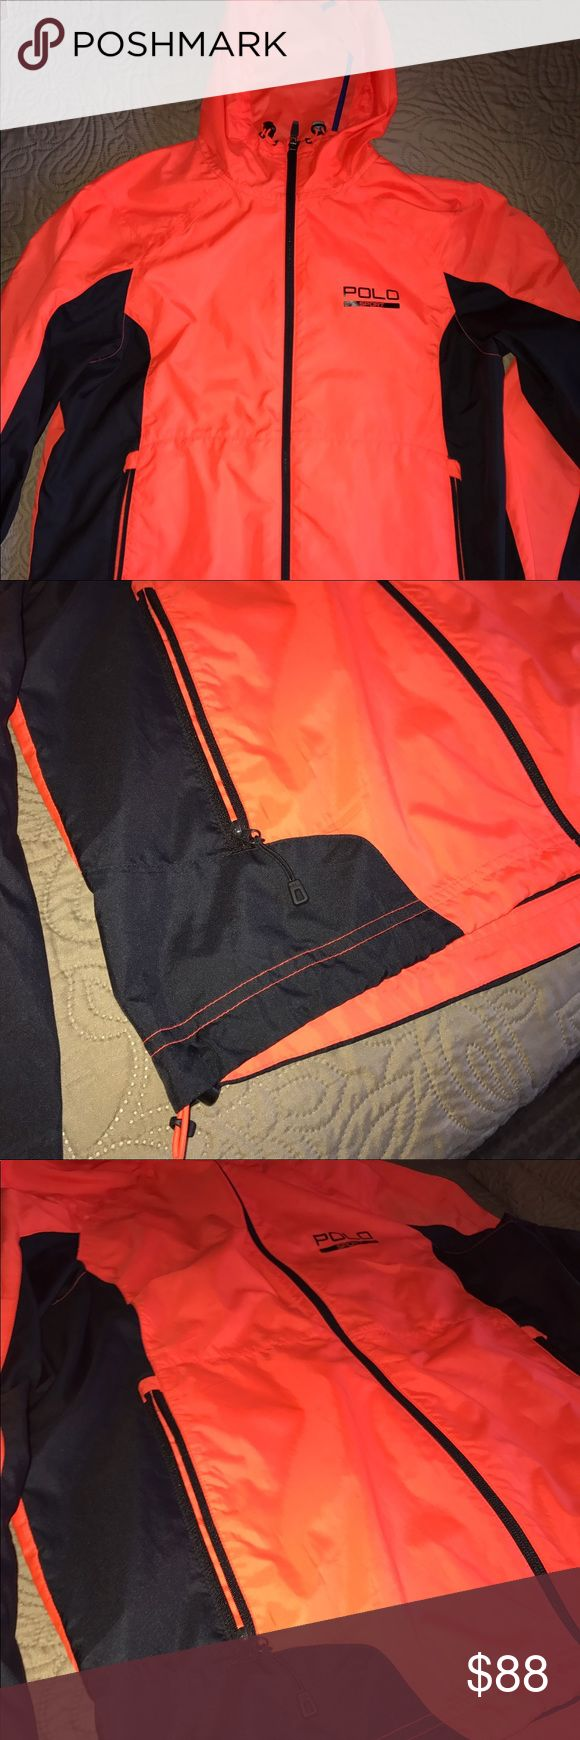 Polo Sport Windbreaker By Ralph Lauren Polo Sport Windbreaker by ralph lauren , size M with front pockets and adjustable waist straps Polo by Ralph Lauren Jackets & Coats Windbreakers